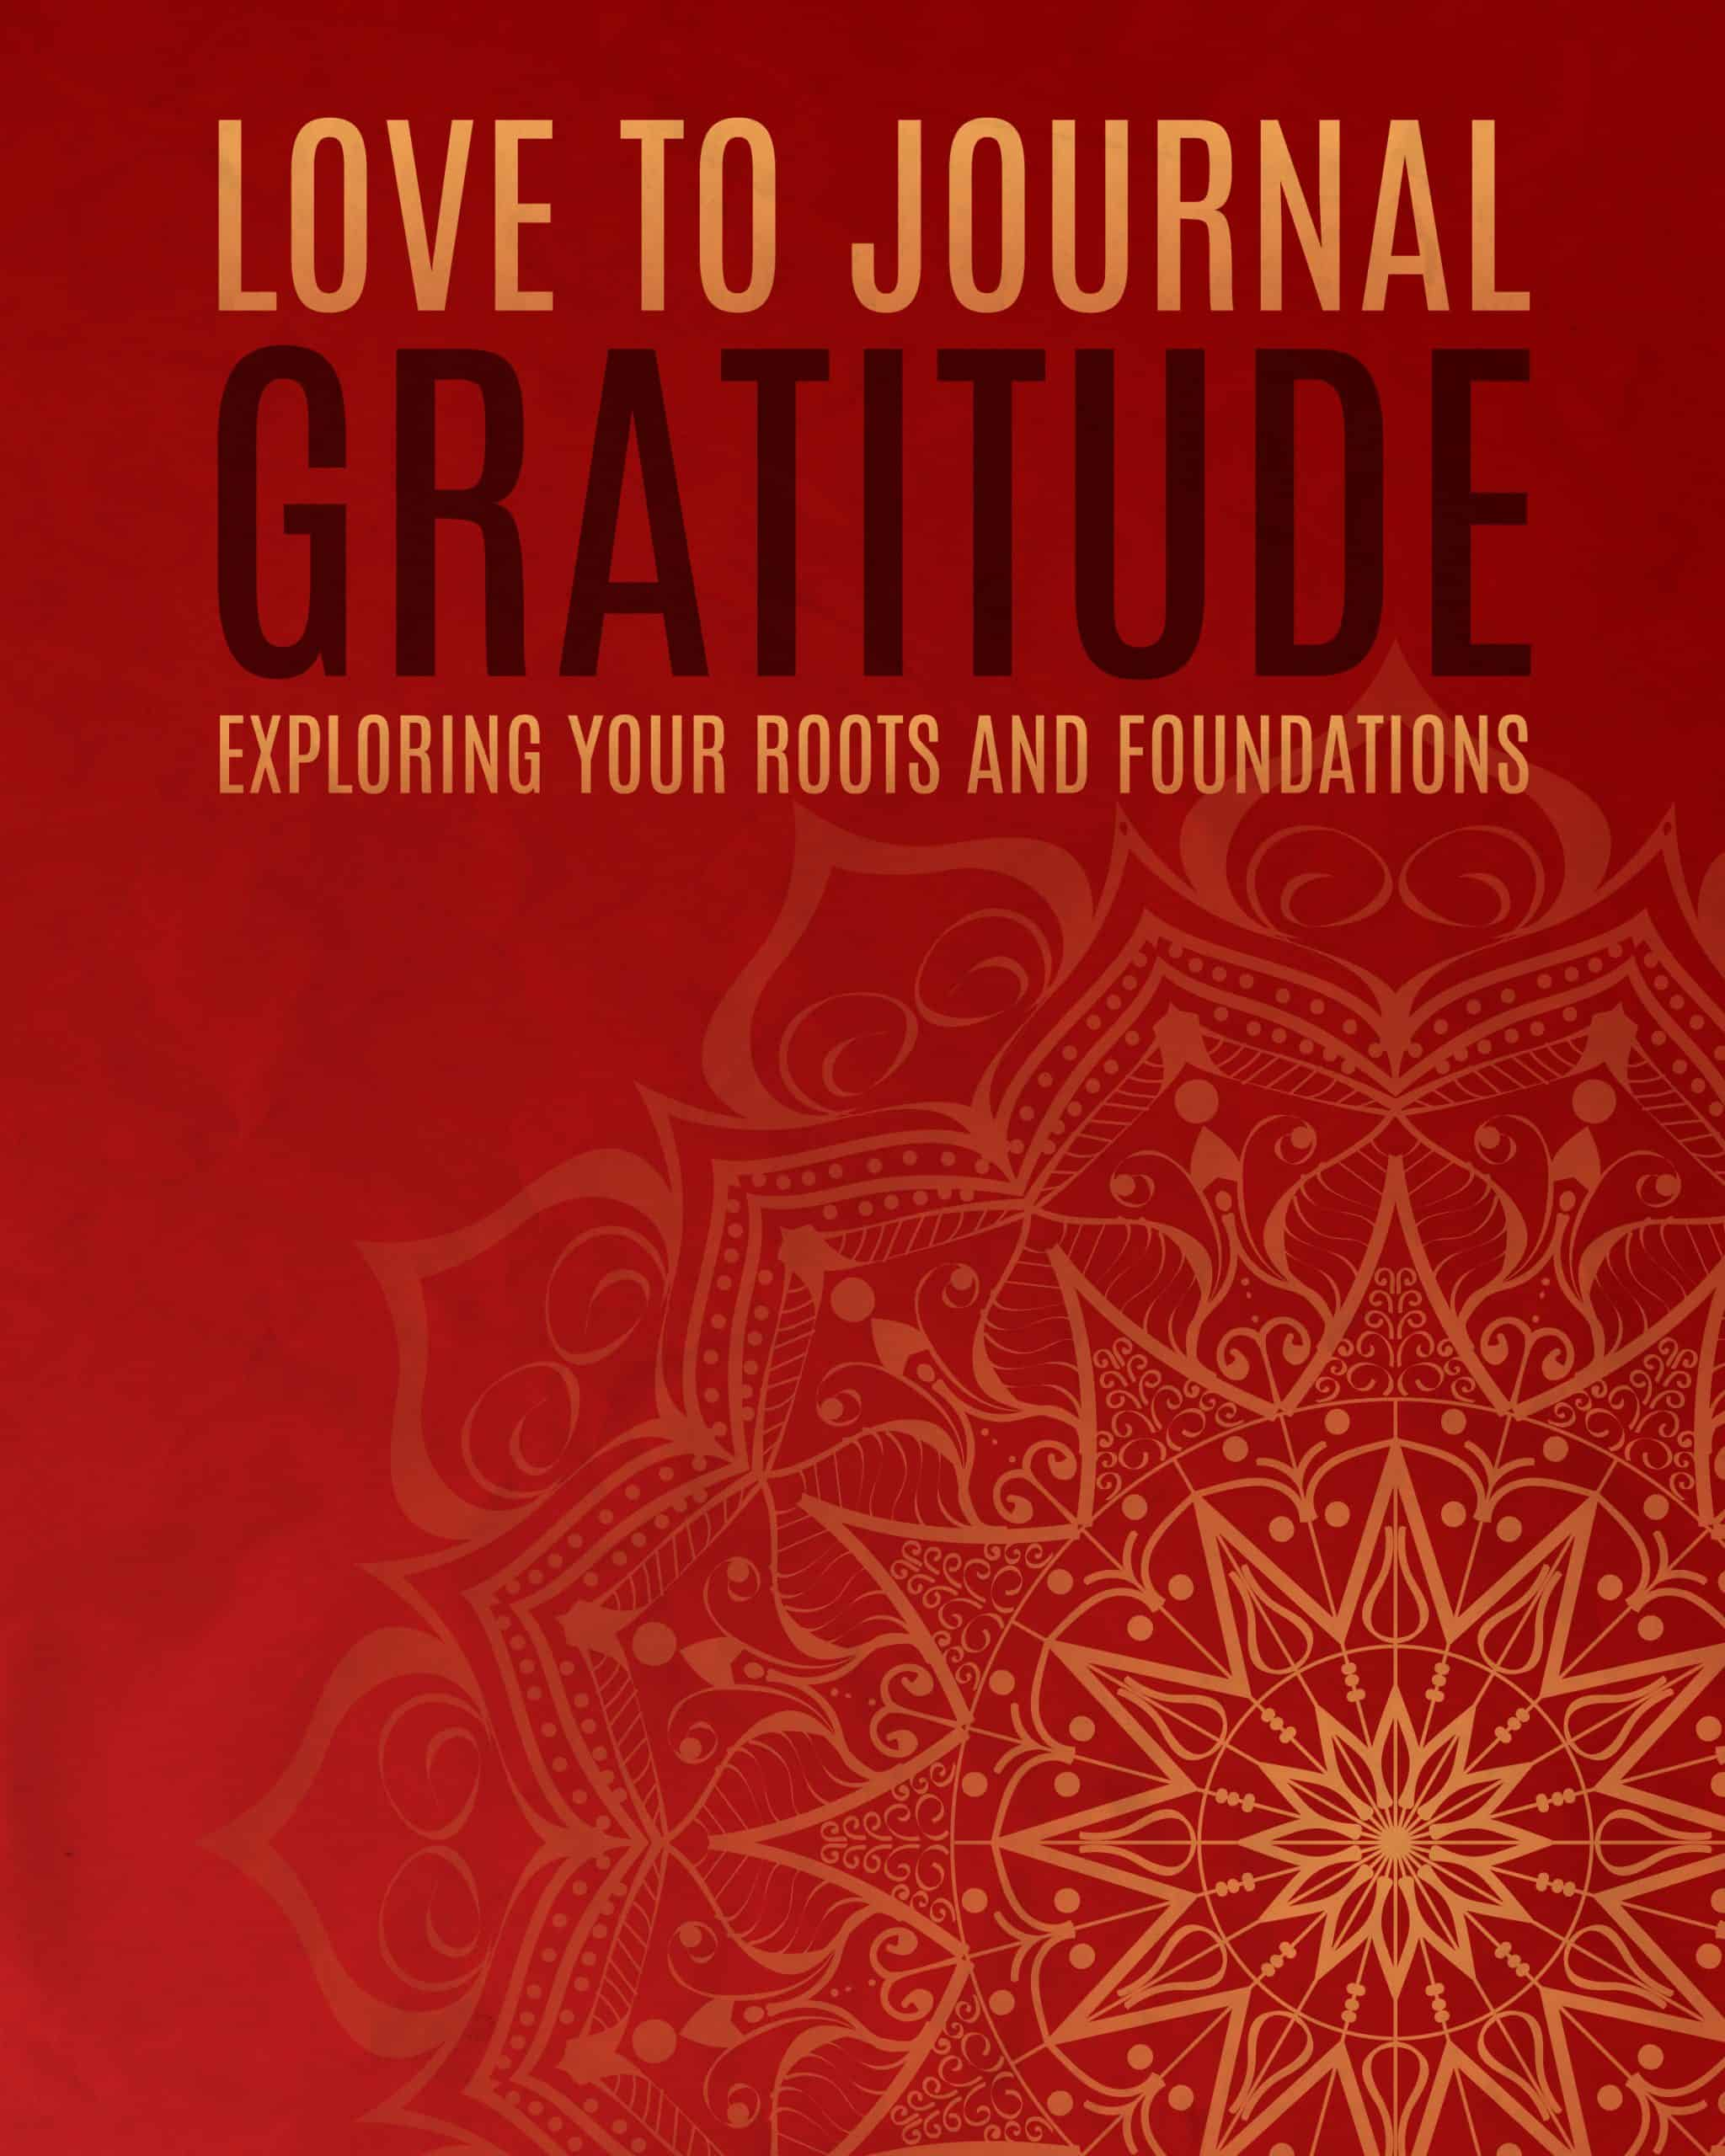 Love-to-journal-gratitude_Plan-de-travail-1-scaled